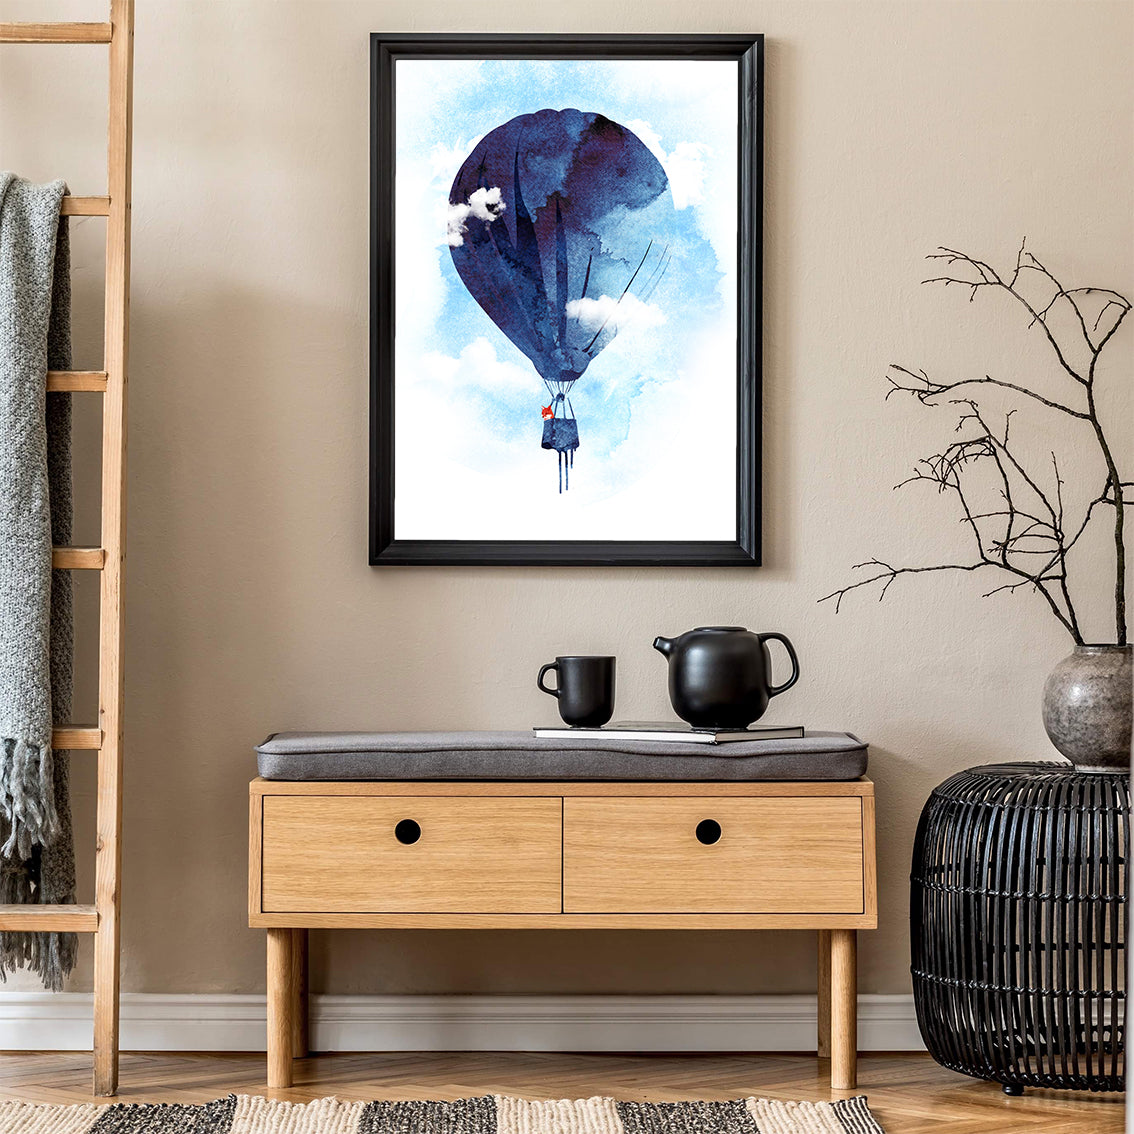 Watercolour illustration print by Robert Farkas, with a fox in a blue hot air balloon, in living room